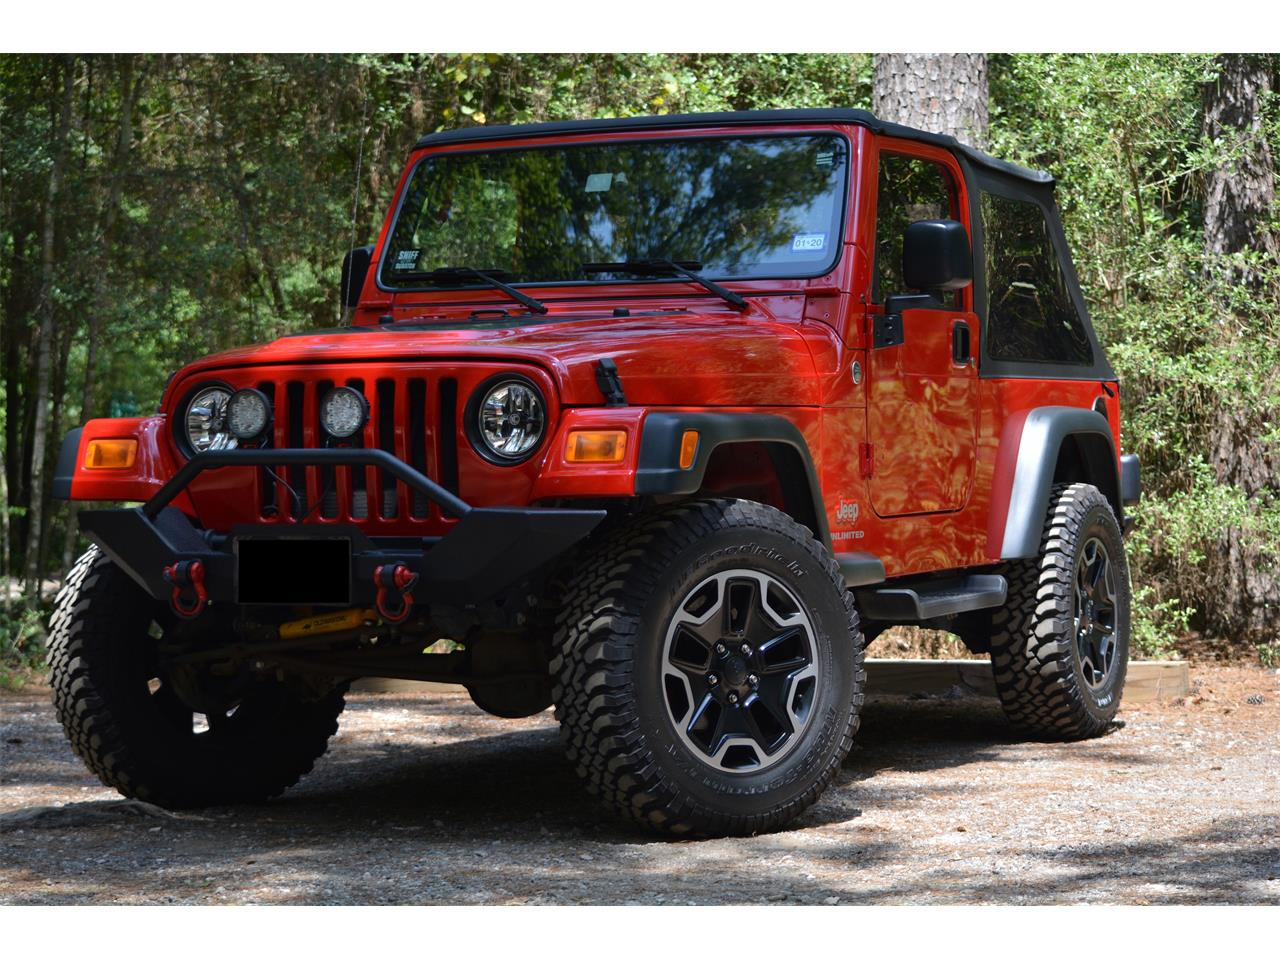 Large Picture of 2006 Wrangler located in Texas - $19,750.00 Offered by a Private Seller - QZ2B